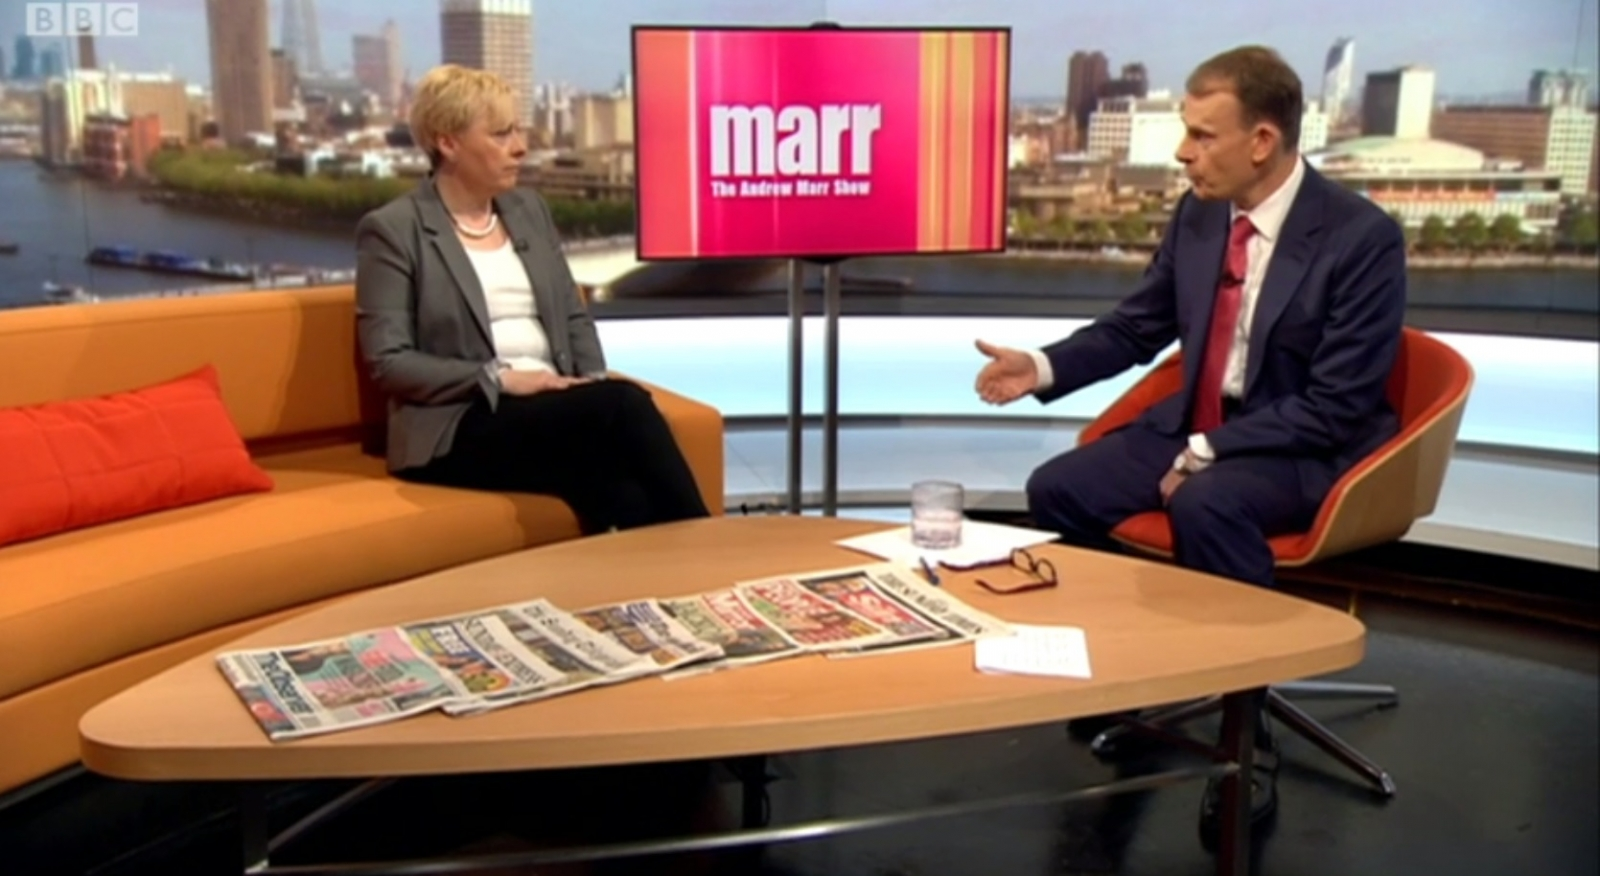 Angela Eagle Andrew Marr BBS Labour